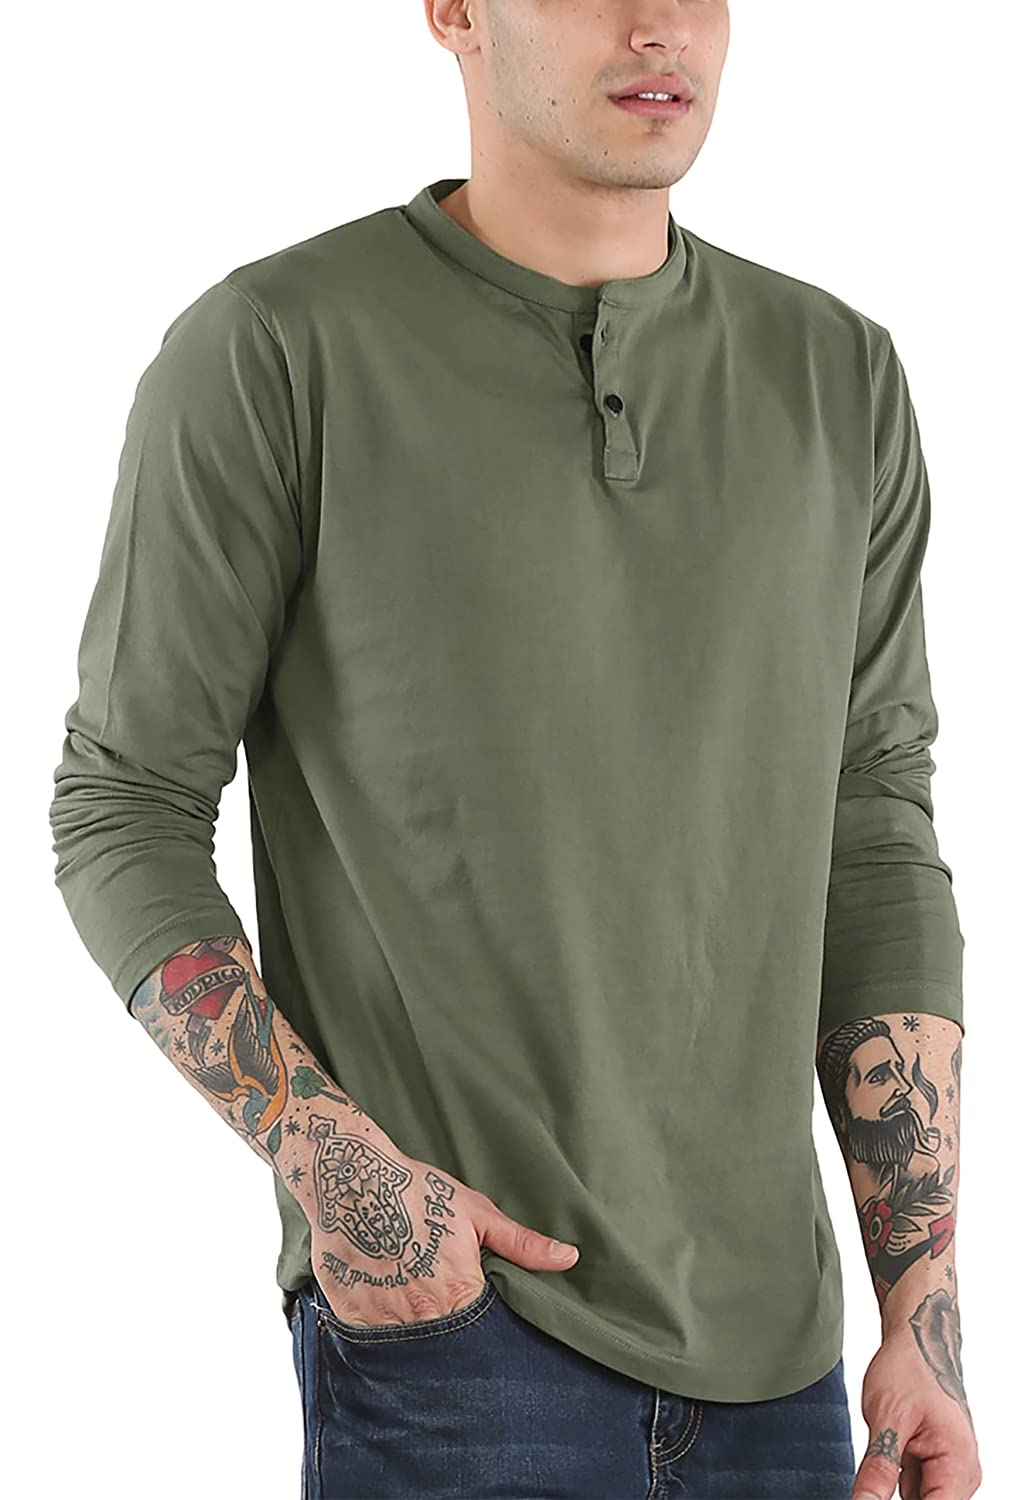 64e7fae6b Fabric: 100% cotton Tshirt, single jersey, pre-washed to impart a softer  texture. Airy and perspire-friendly half sleeve t shirt fabric for men, ...